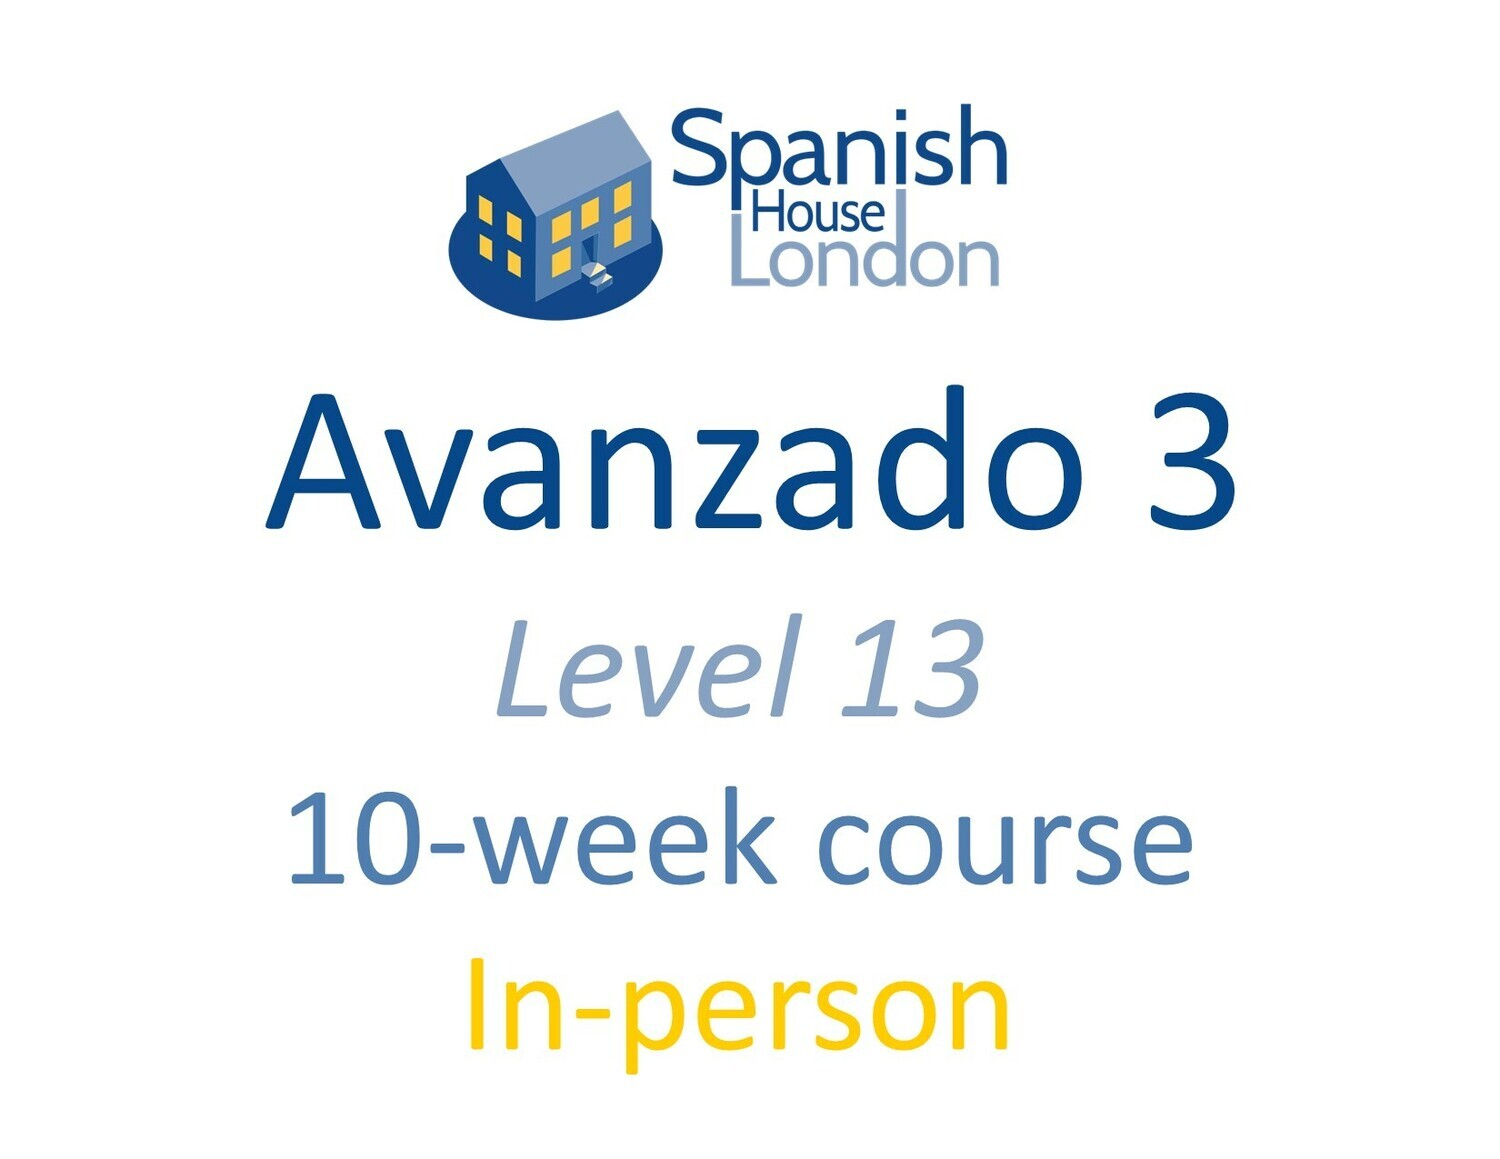 Avanzado 3 Course starting on 24th November at 7.30pm in Clapham North